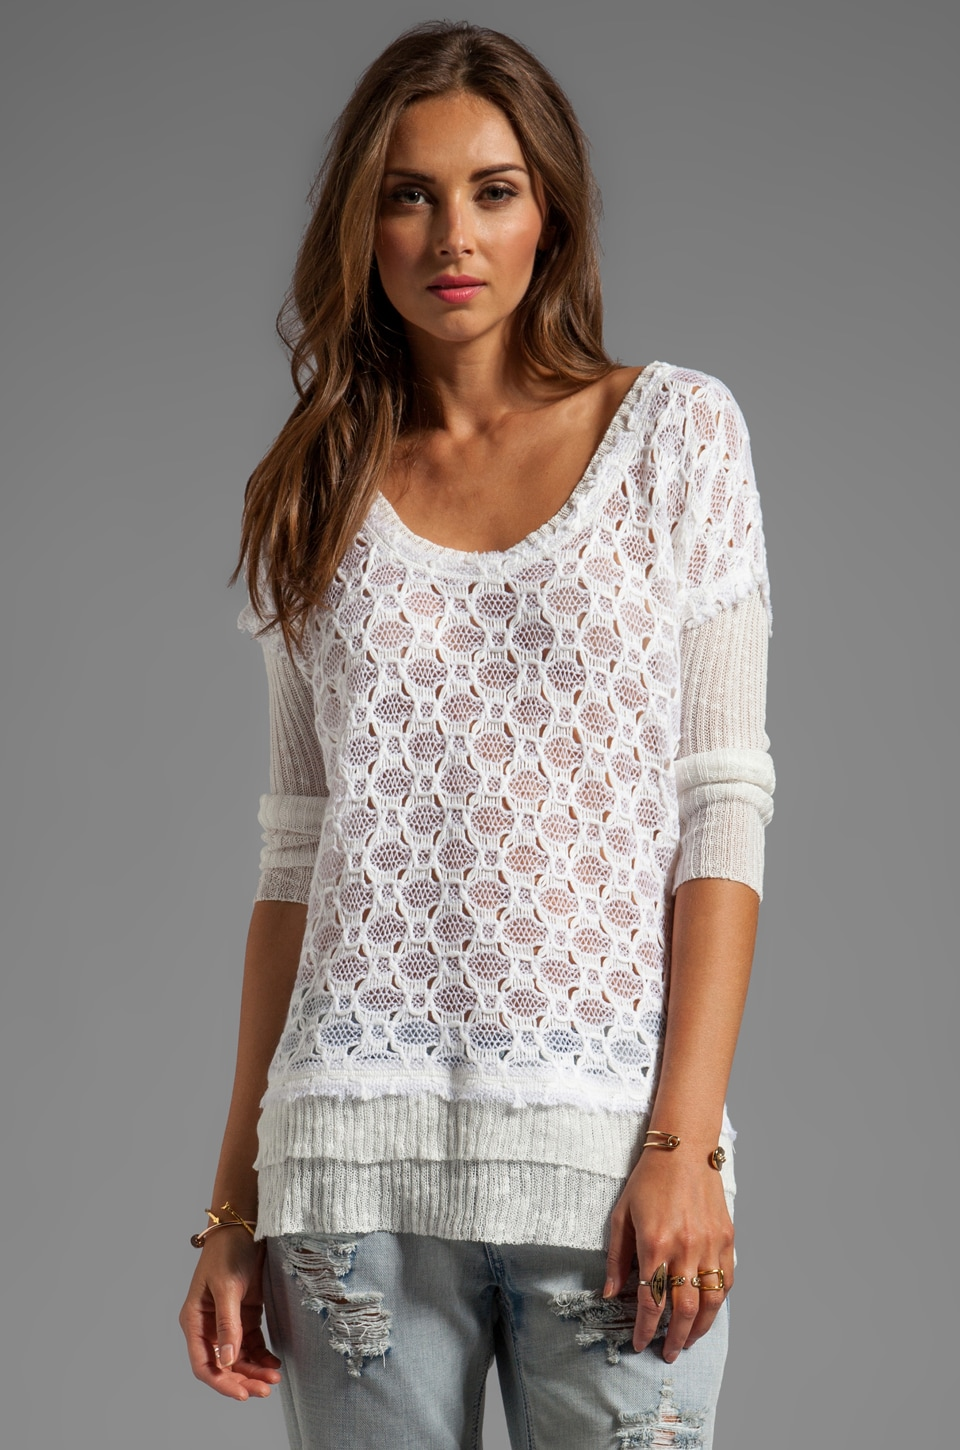 Free People Boxy Textured Sweater in White